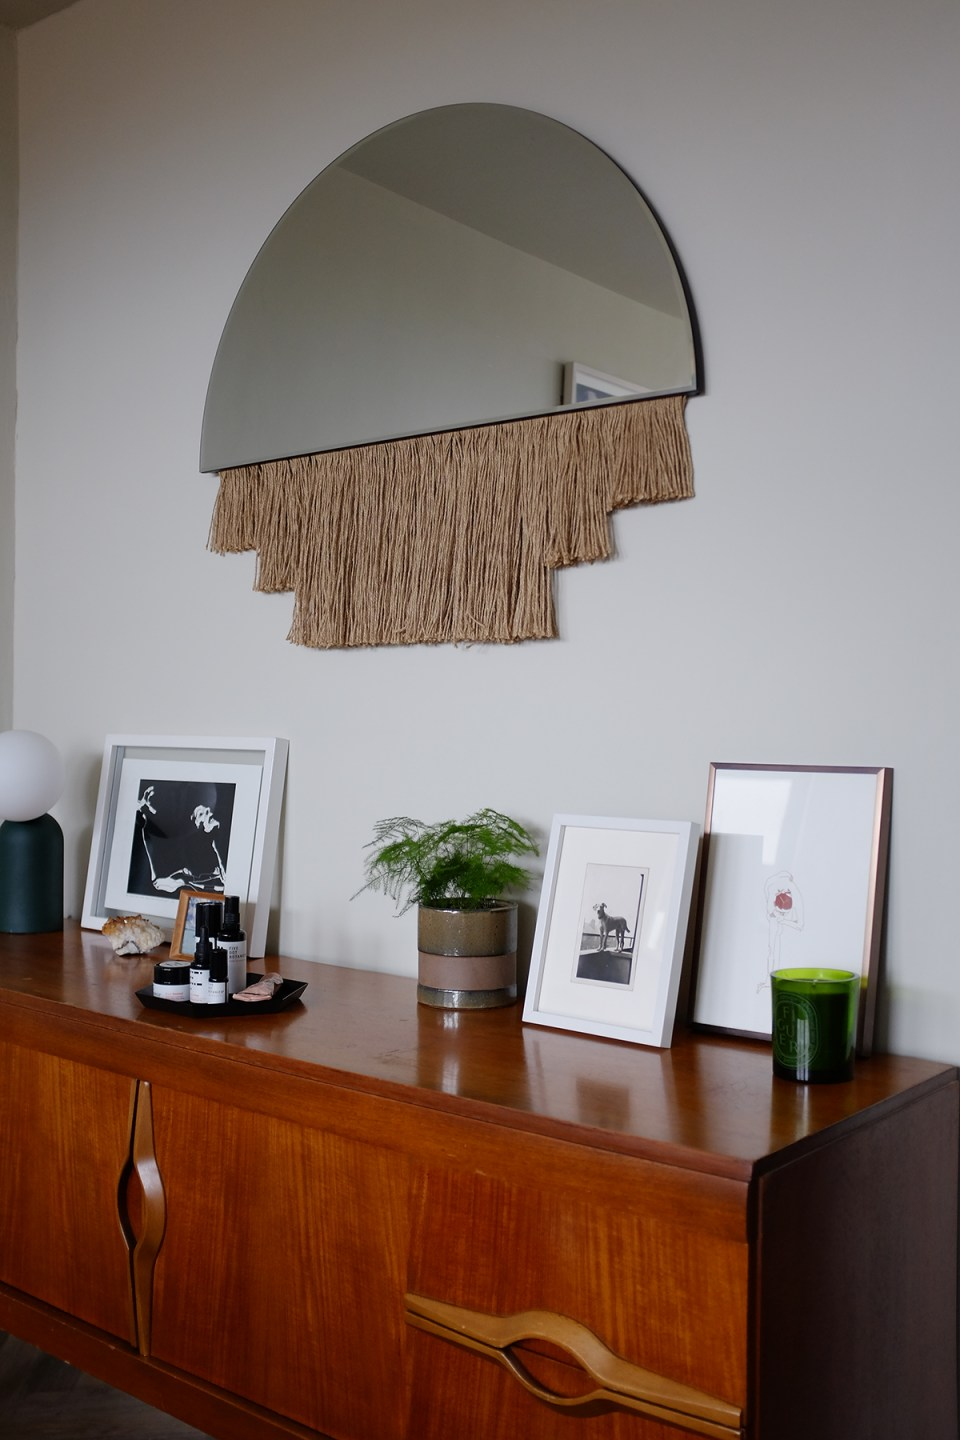 mid-century sideboard with fringed mirror